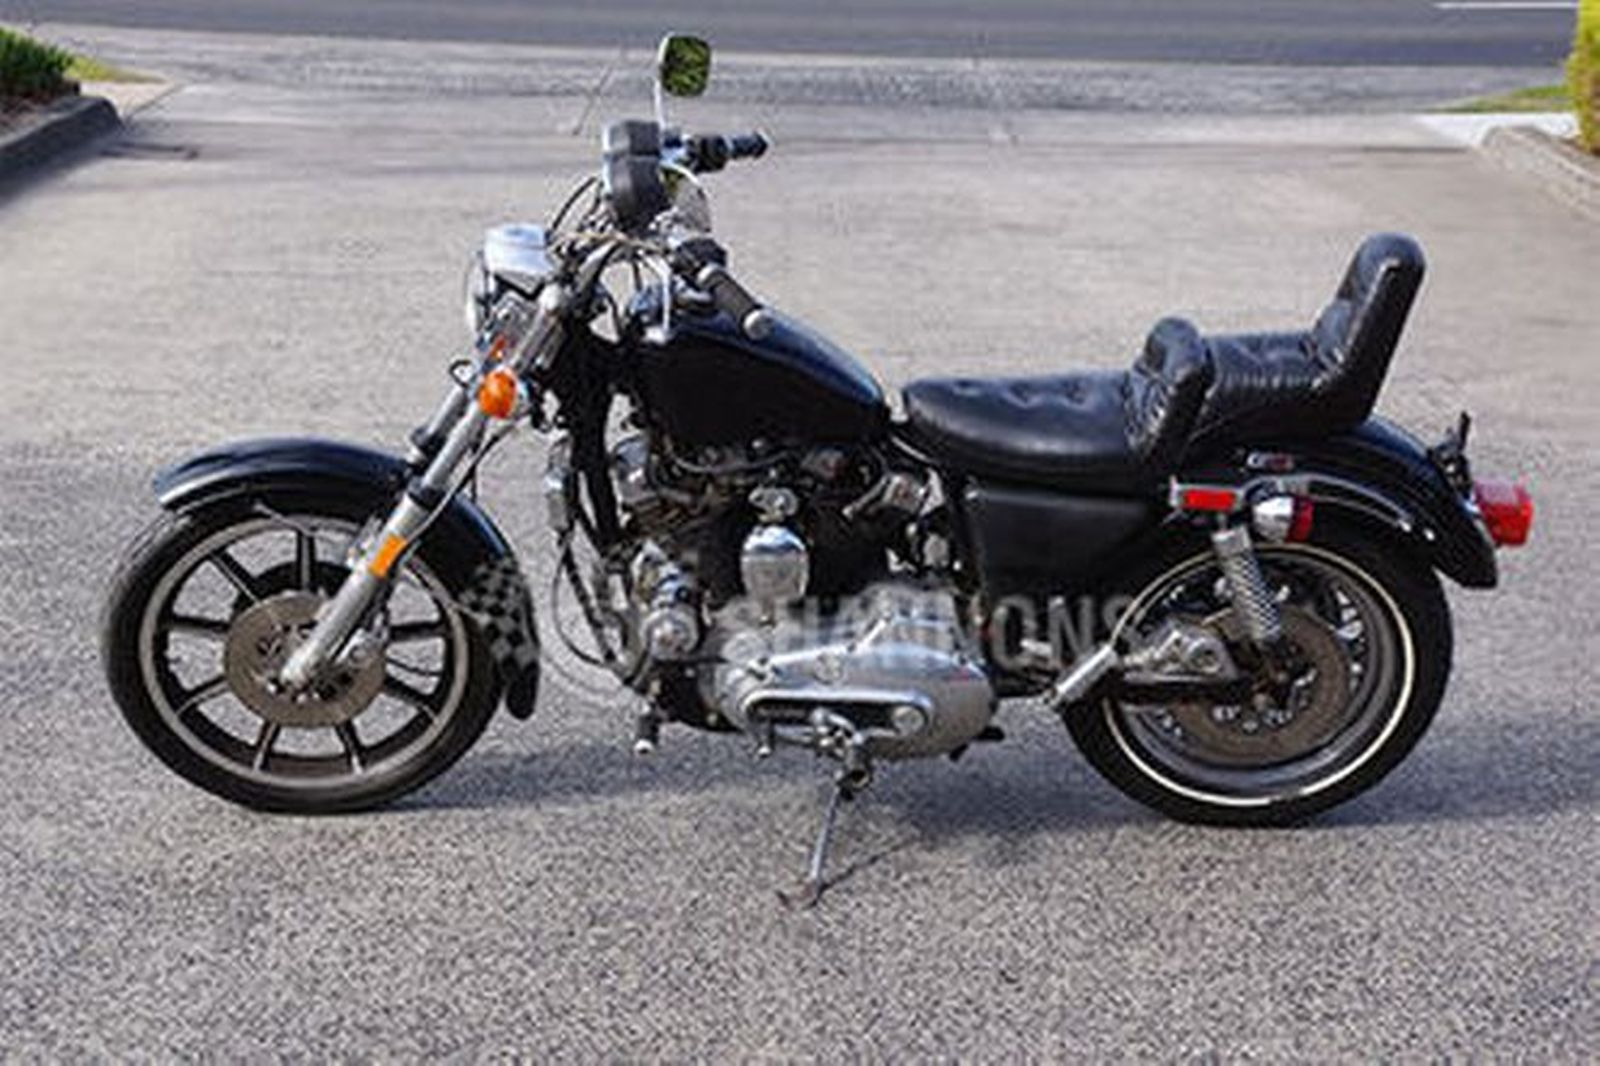 Sold: Harley-Davidson Sportster 1000cc Motorcycle Auctions - Lot 19